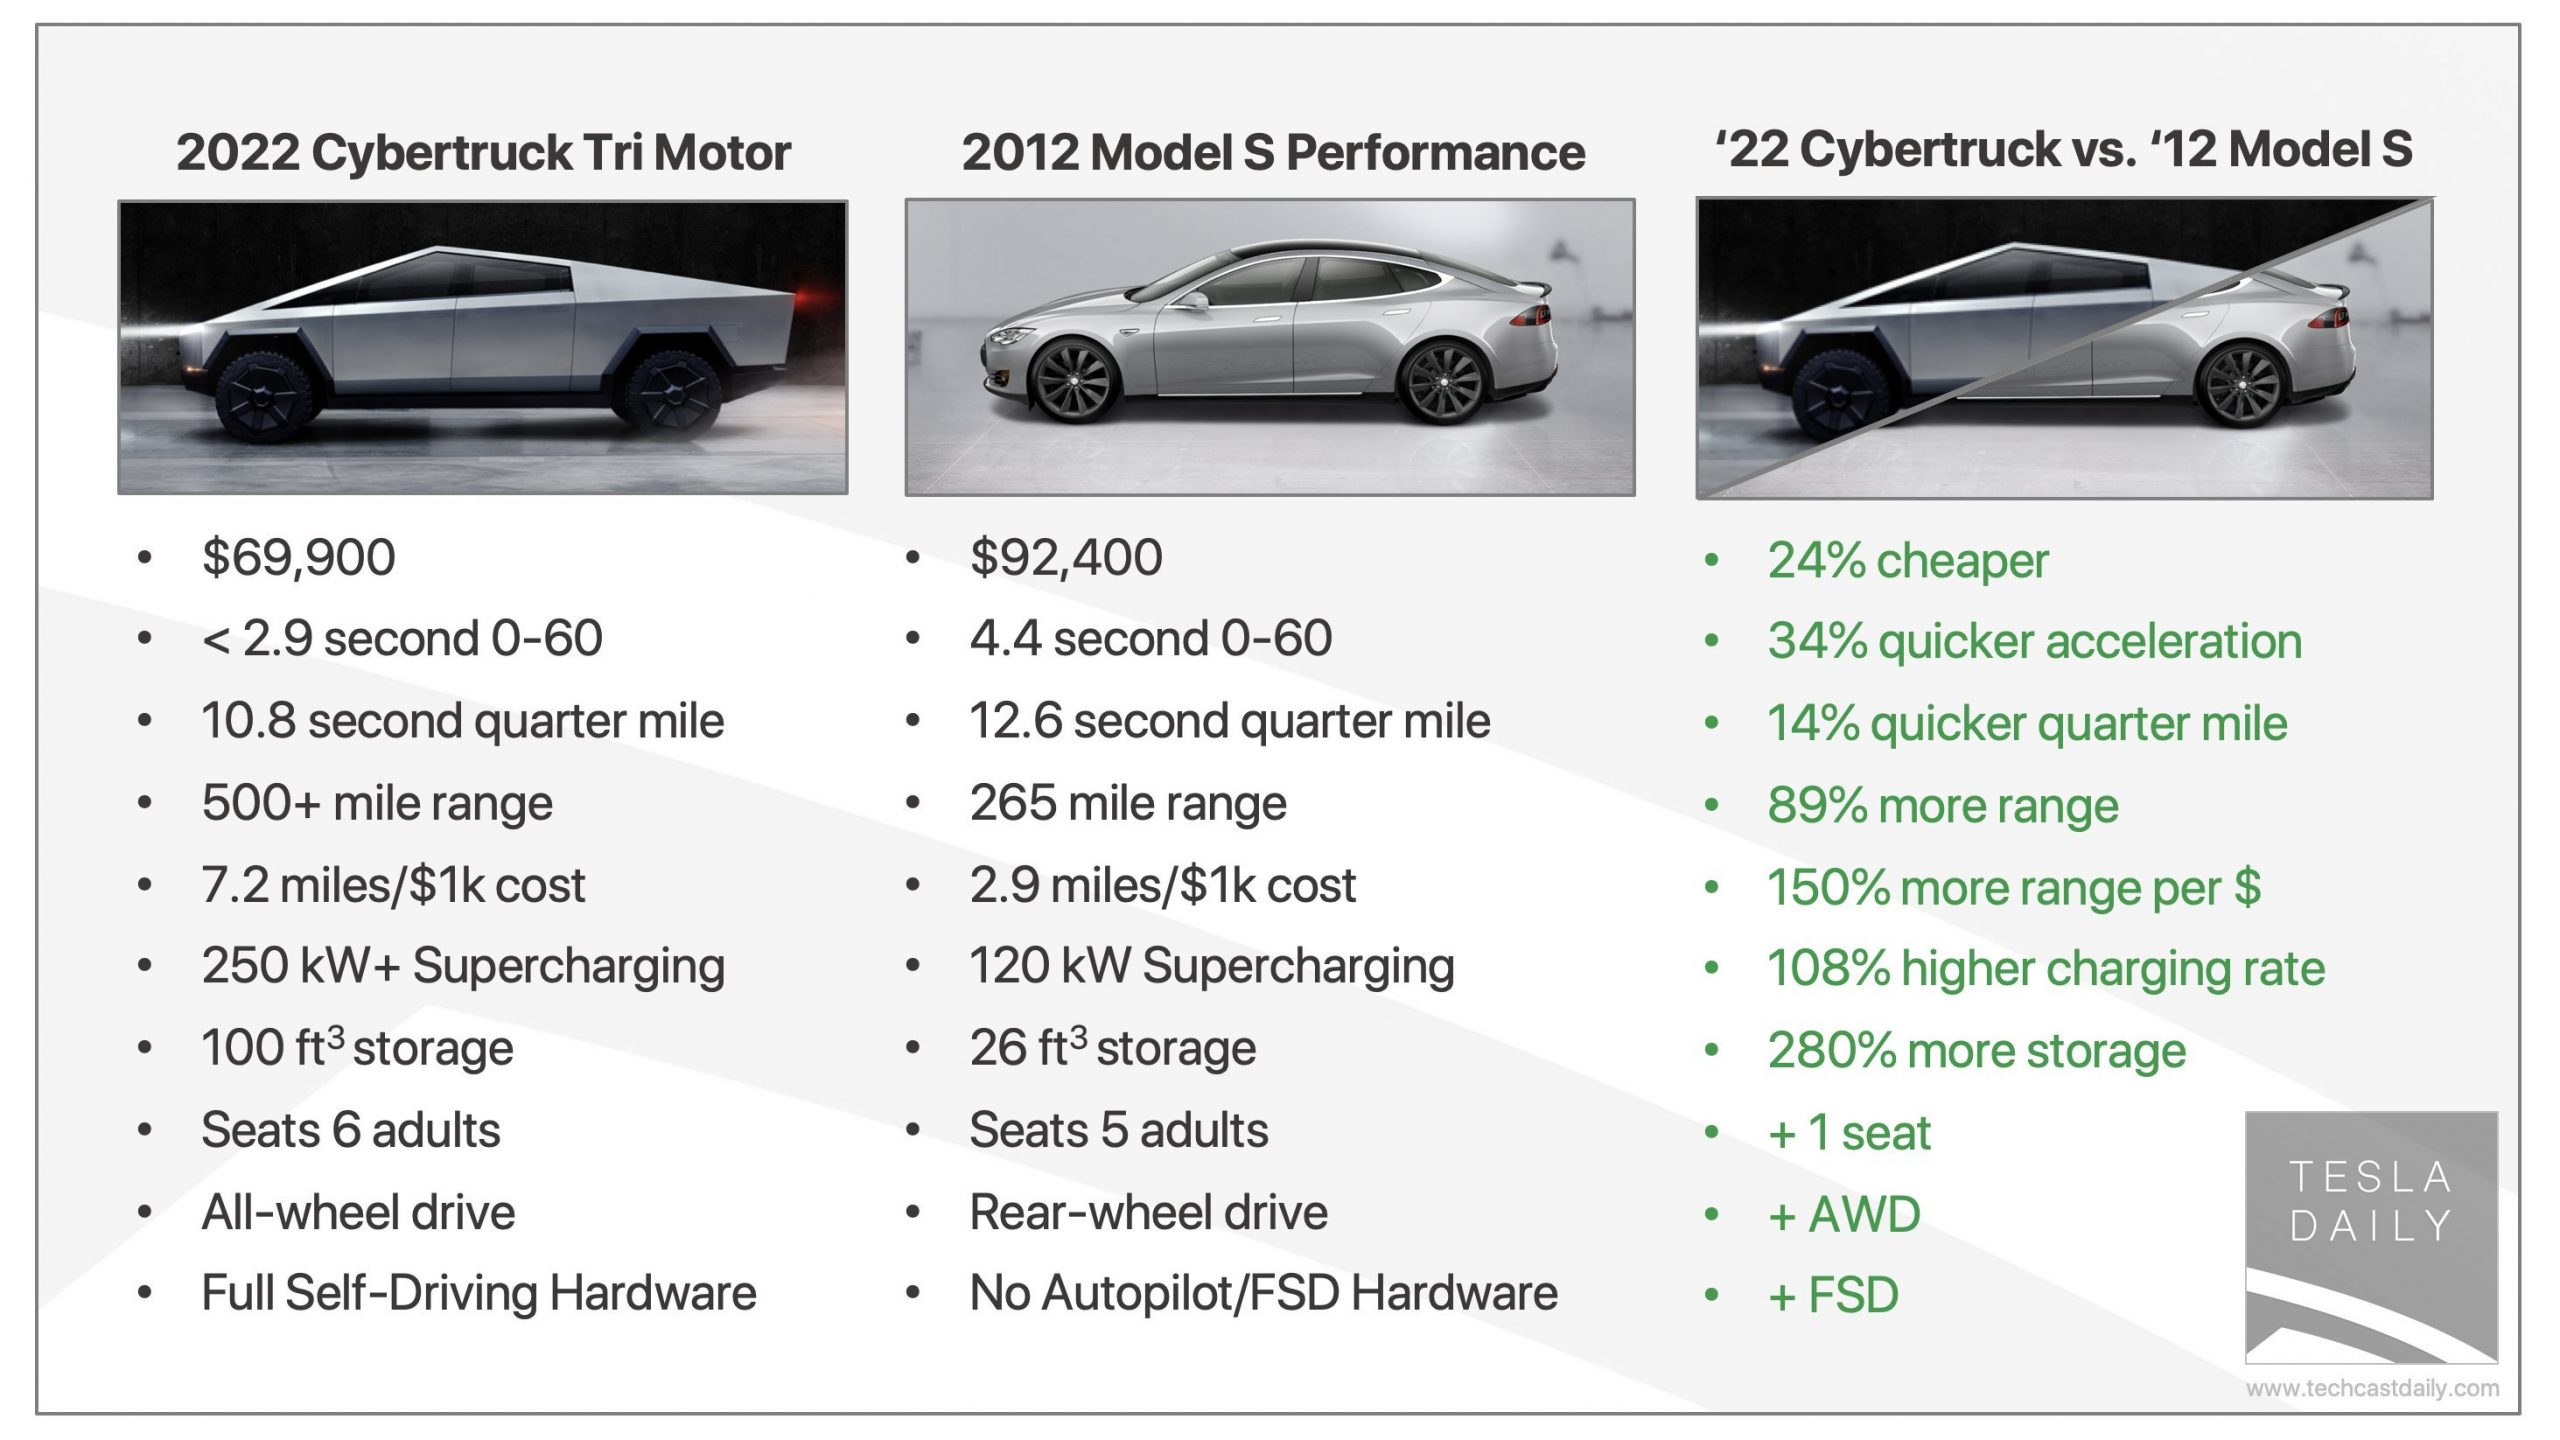 Tesla Daily comparing Model S to Cybertruck